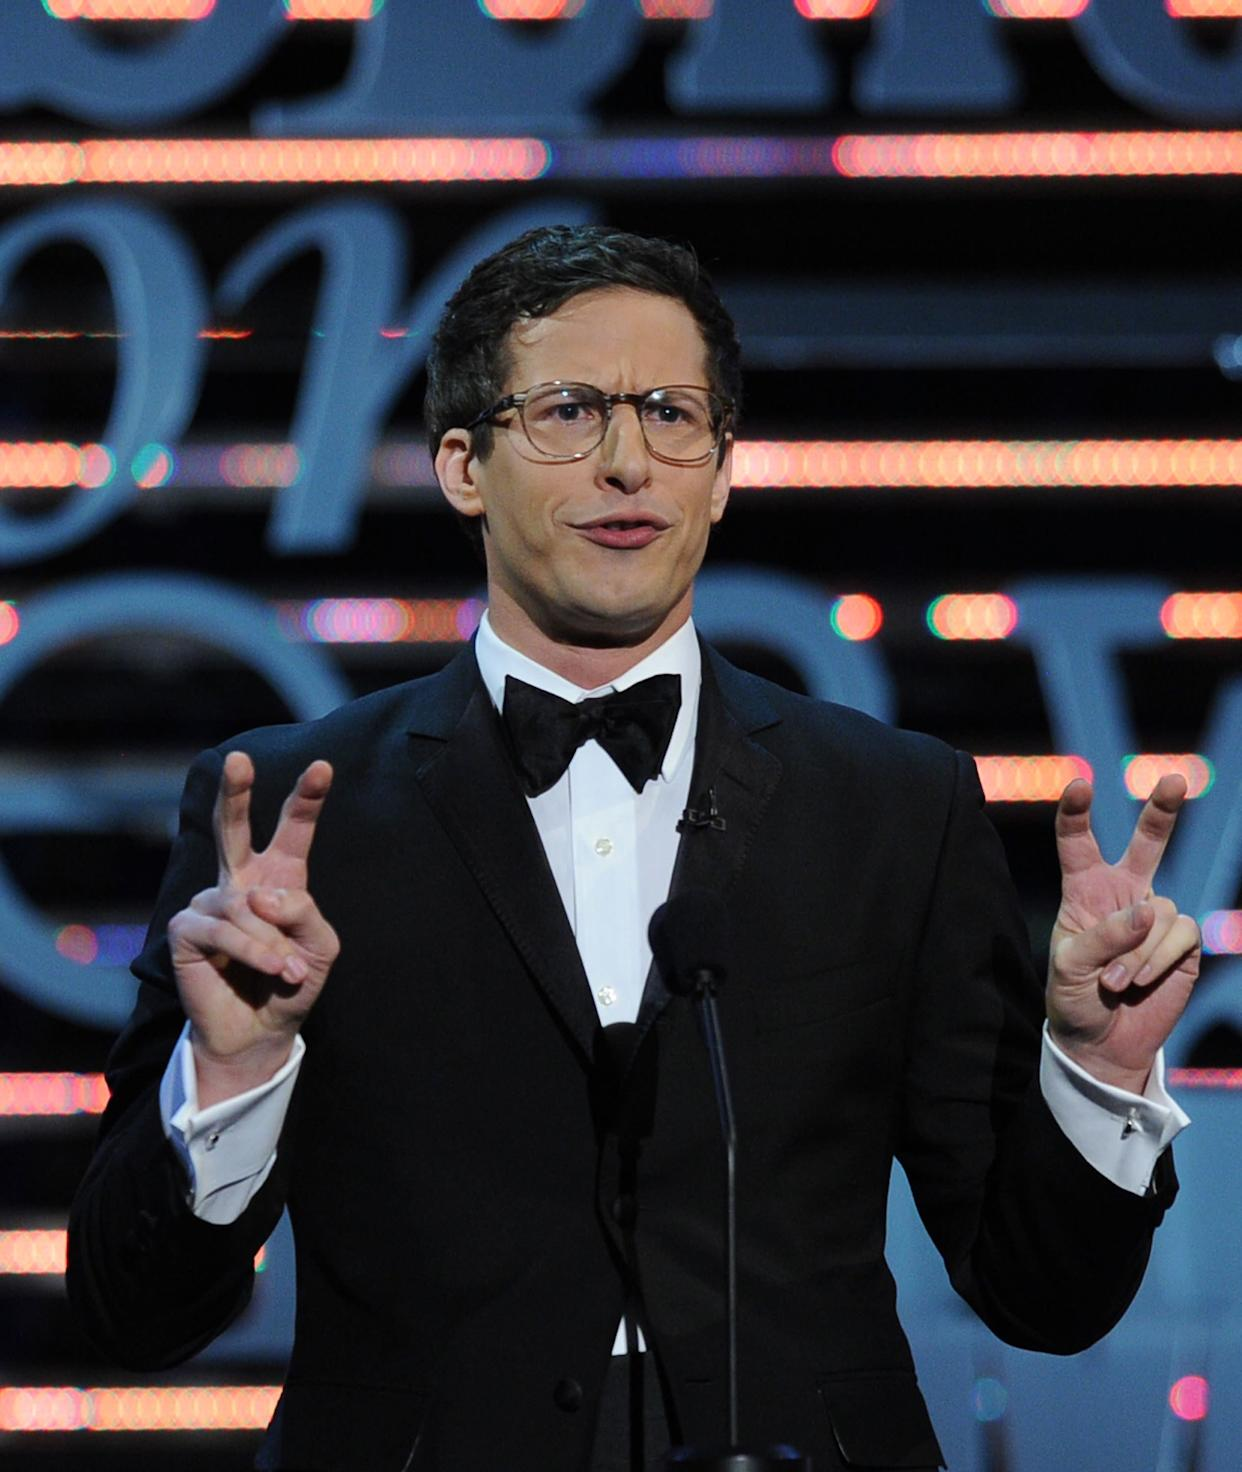 CULVER CITY, CA - AUGUST 25: Actor Andy Samberg speaks onstage during The Comedy Central Roast of James Franco at Culver Studios on August 25, 2013 in Culver City, California. The Comedy Central Roast Of James Franco will air on September 2 at 10:00 p.m. ET/PT. (Photo by Kevin Winter/Getty Images for Comedy Central)